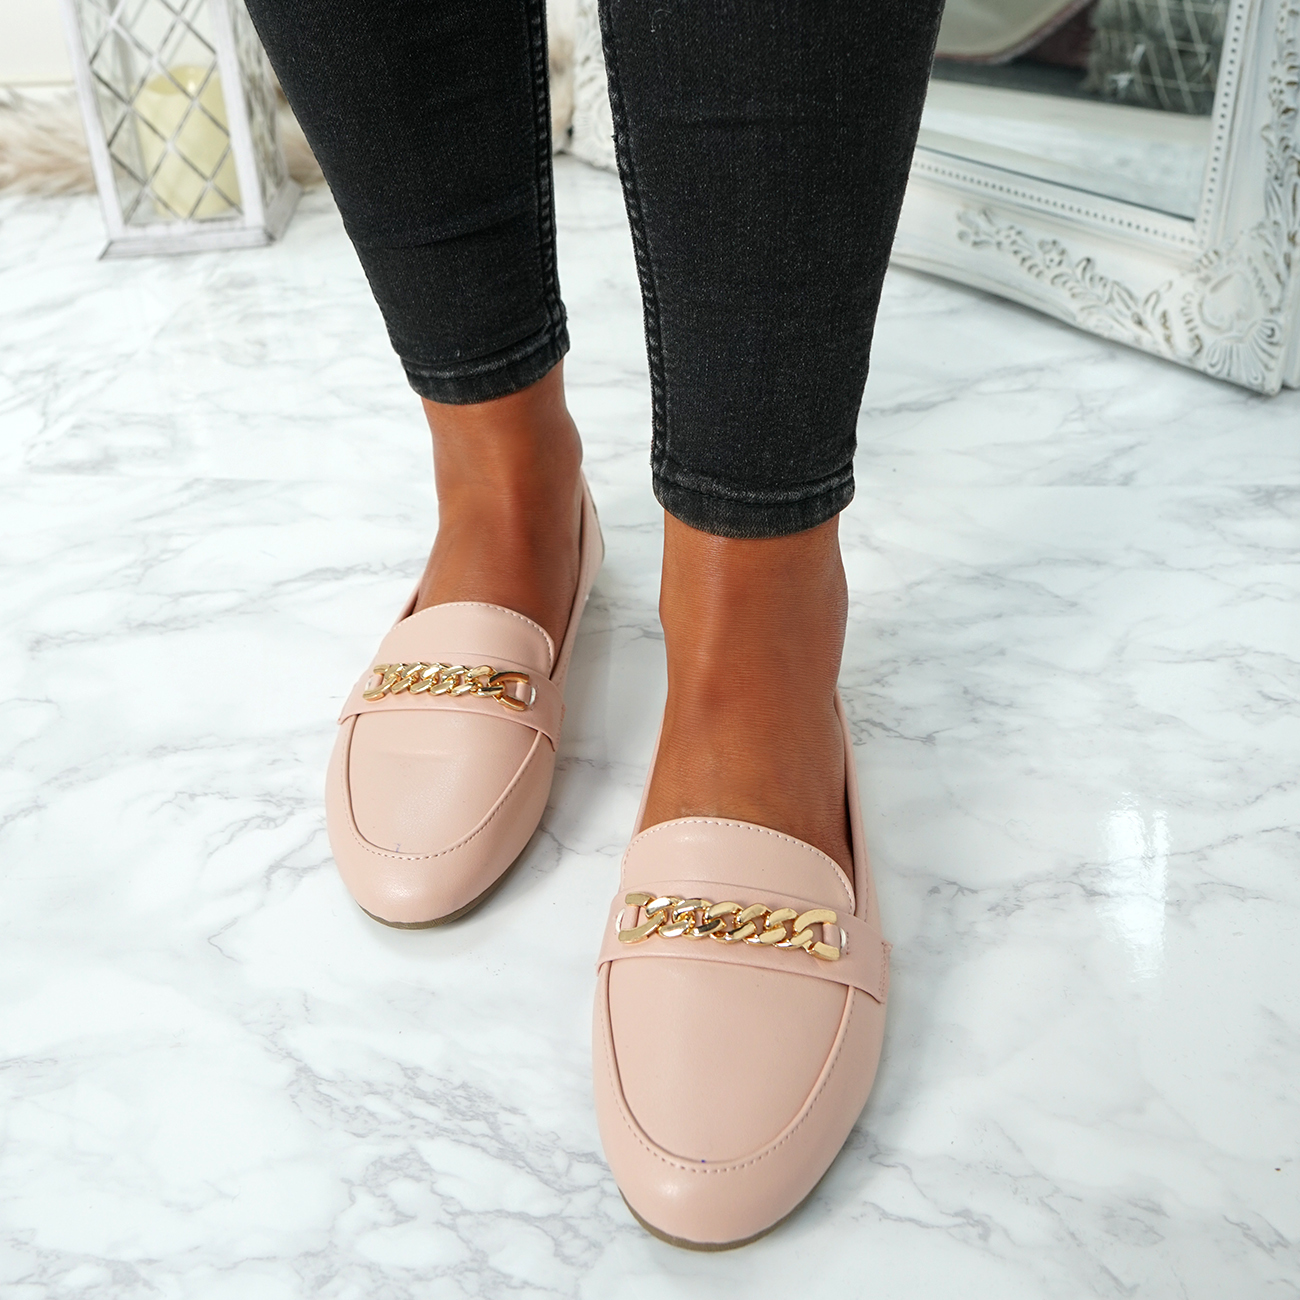 WOMENS-LADIES-CHAIN-SLIP-ON-BALLERINA-LOAFERS-BALLET-DOLLY-PUMPS-SHOES-SIZE thumbnail 32